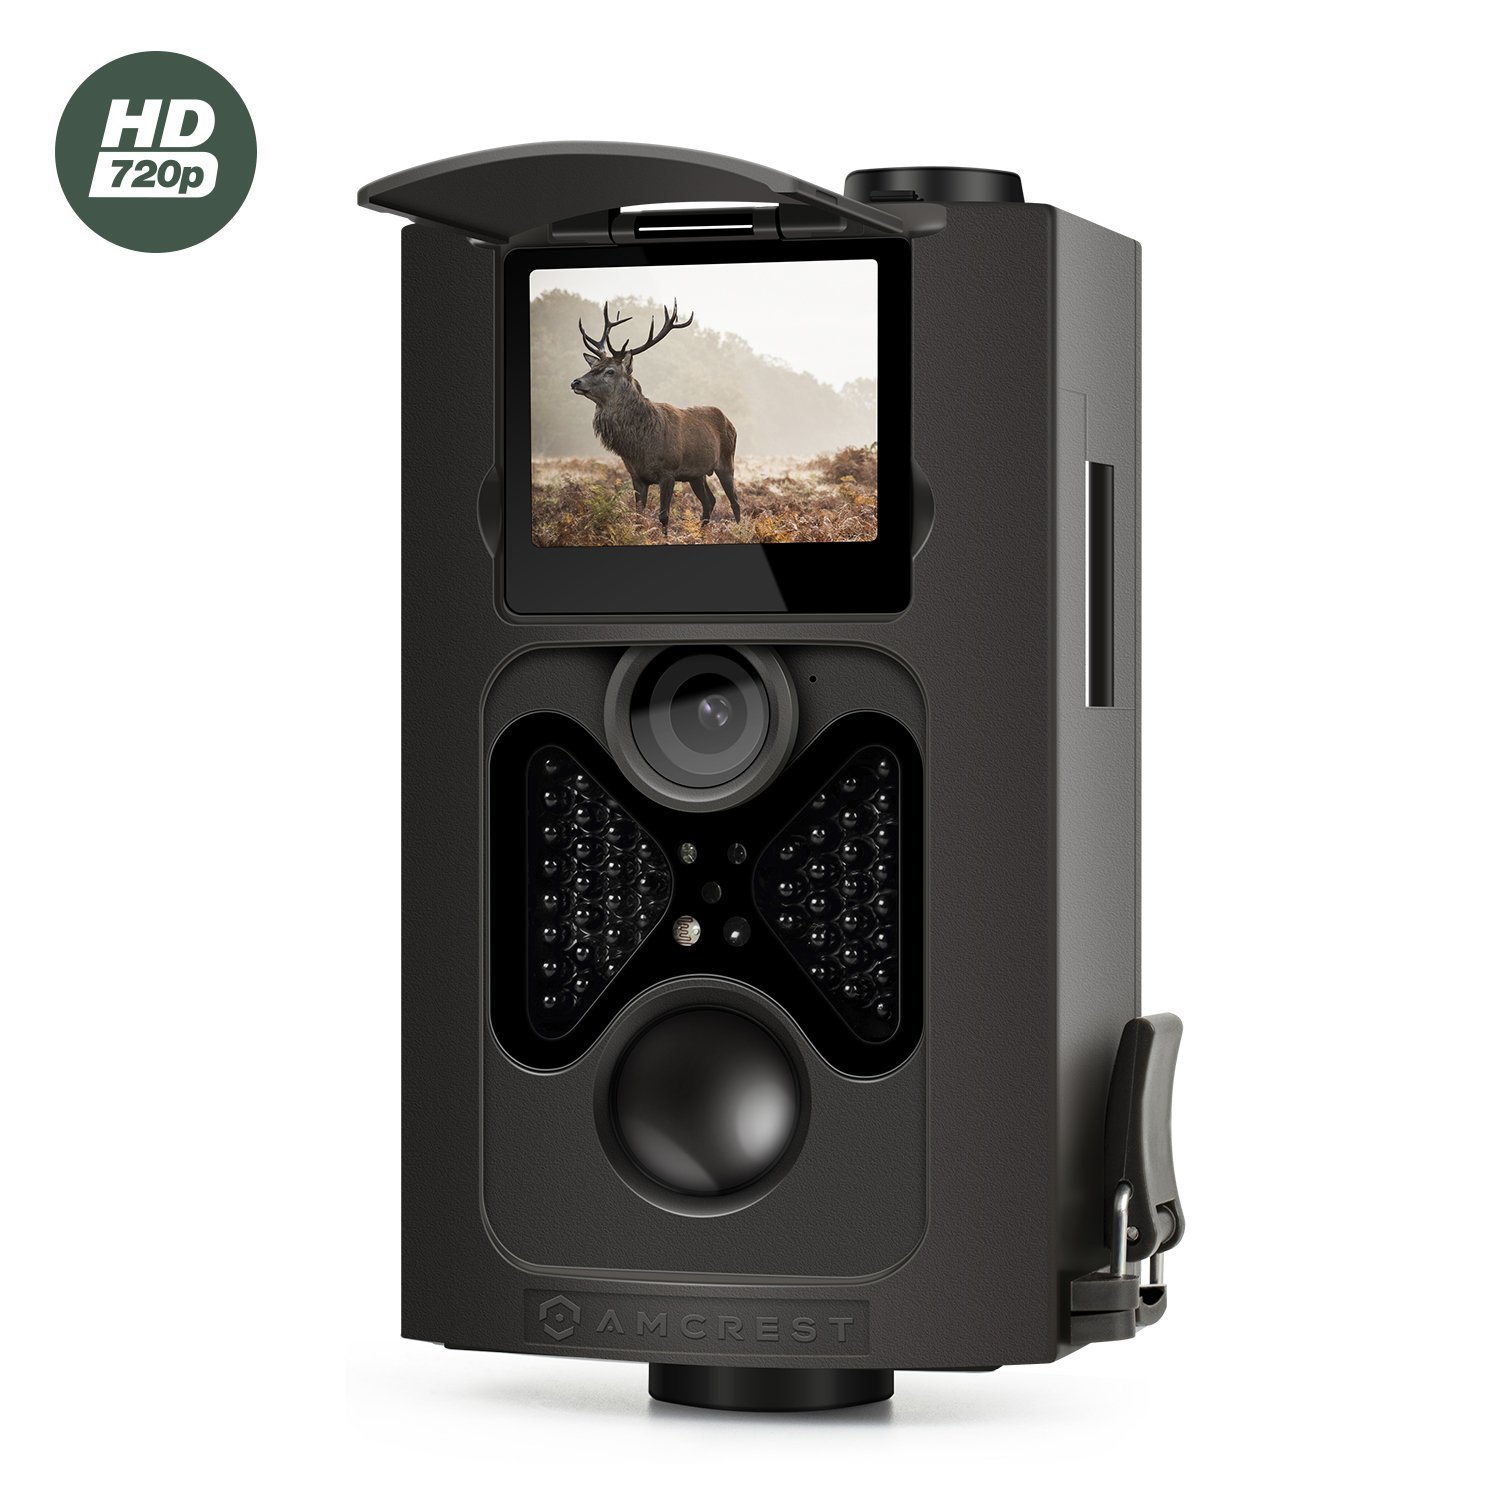 Amcrest 720P HD Game and Trail Camera - 8MP Dynamic Capture, Integrated 2'' LCD Screen, High-Sensitivity Motion Detection with Long Range Infrared LED Night Vision up to 65ft (ATC-802)